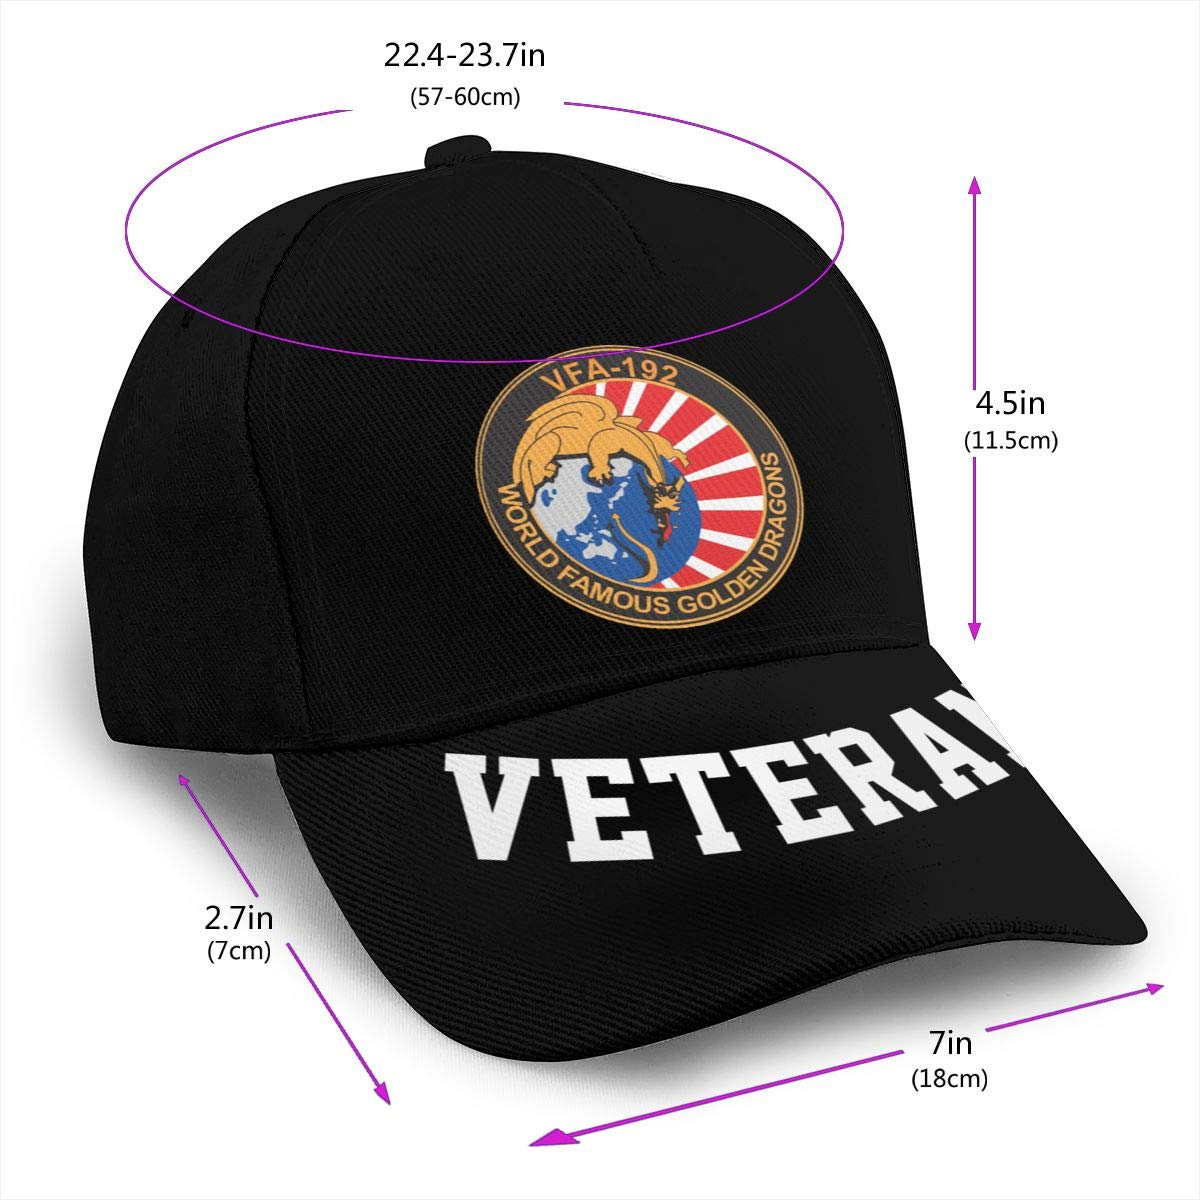 VFA-192 World Famous Golden Dragons Baseball Cap Dad Hat Unisex Classic Sports Hat Peaked Cap Veteran Hat